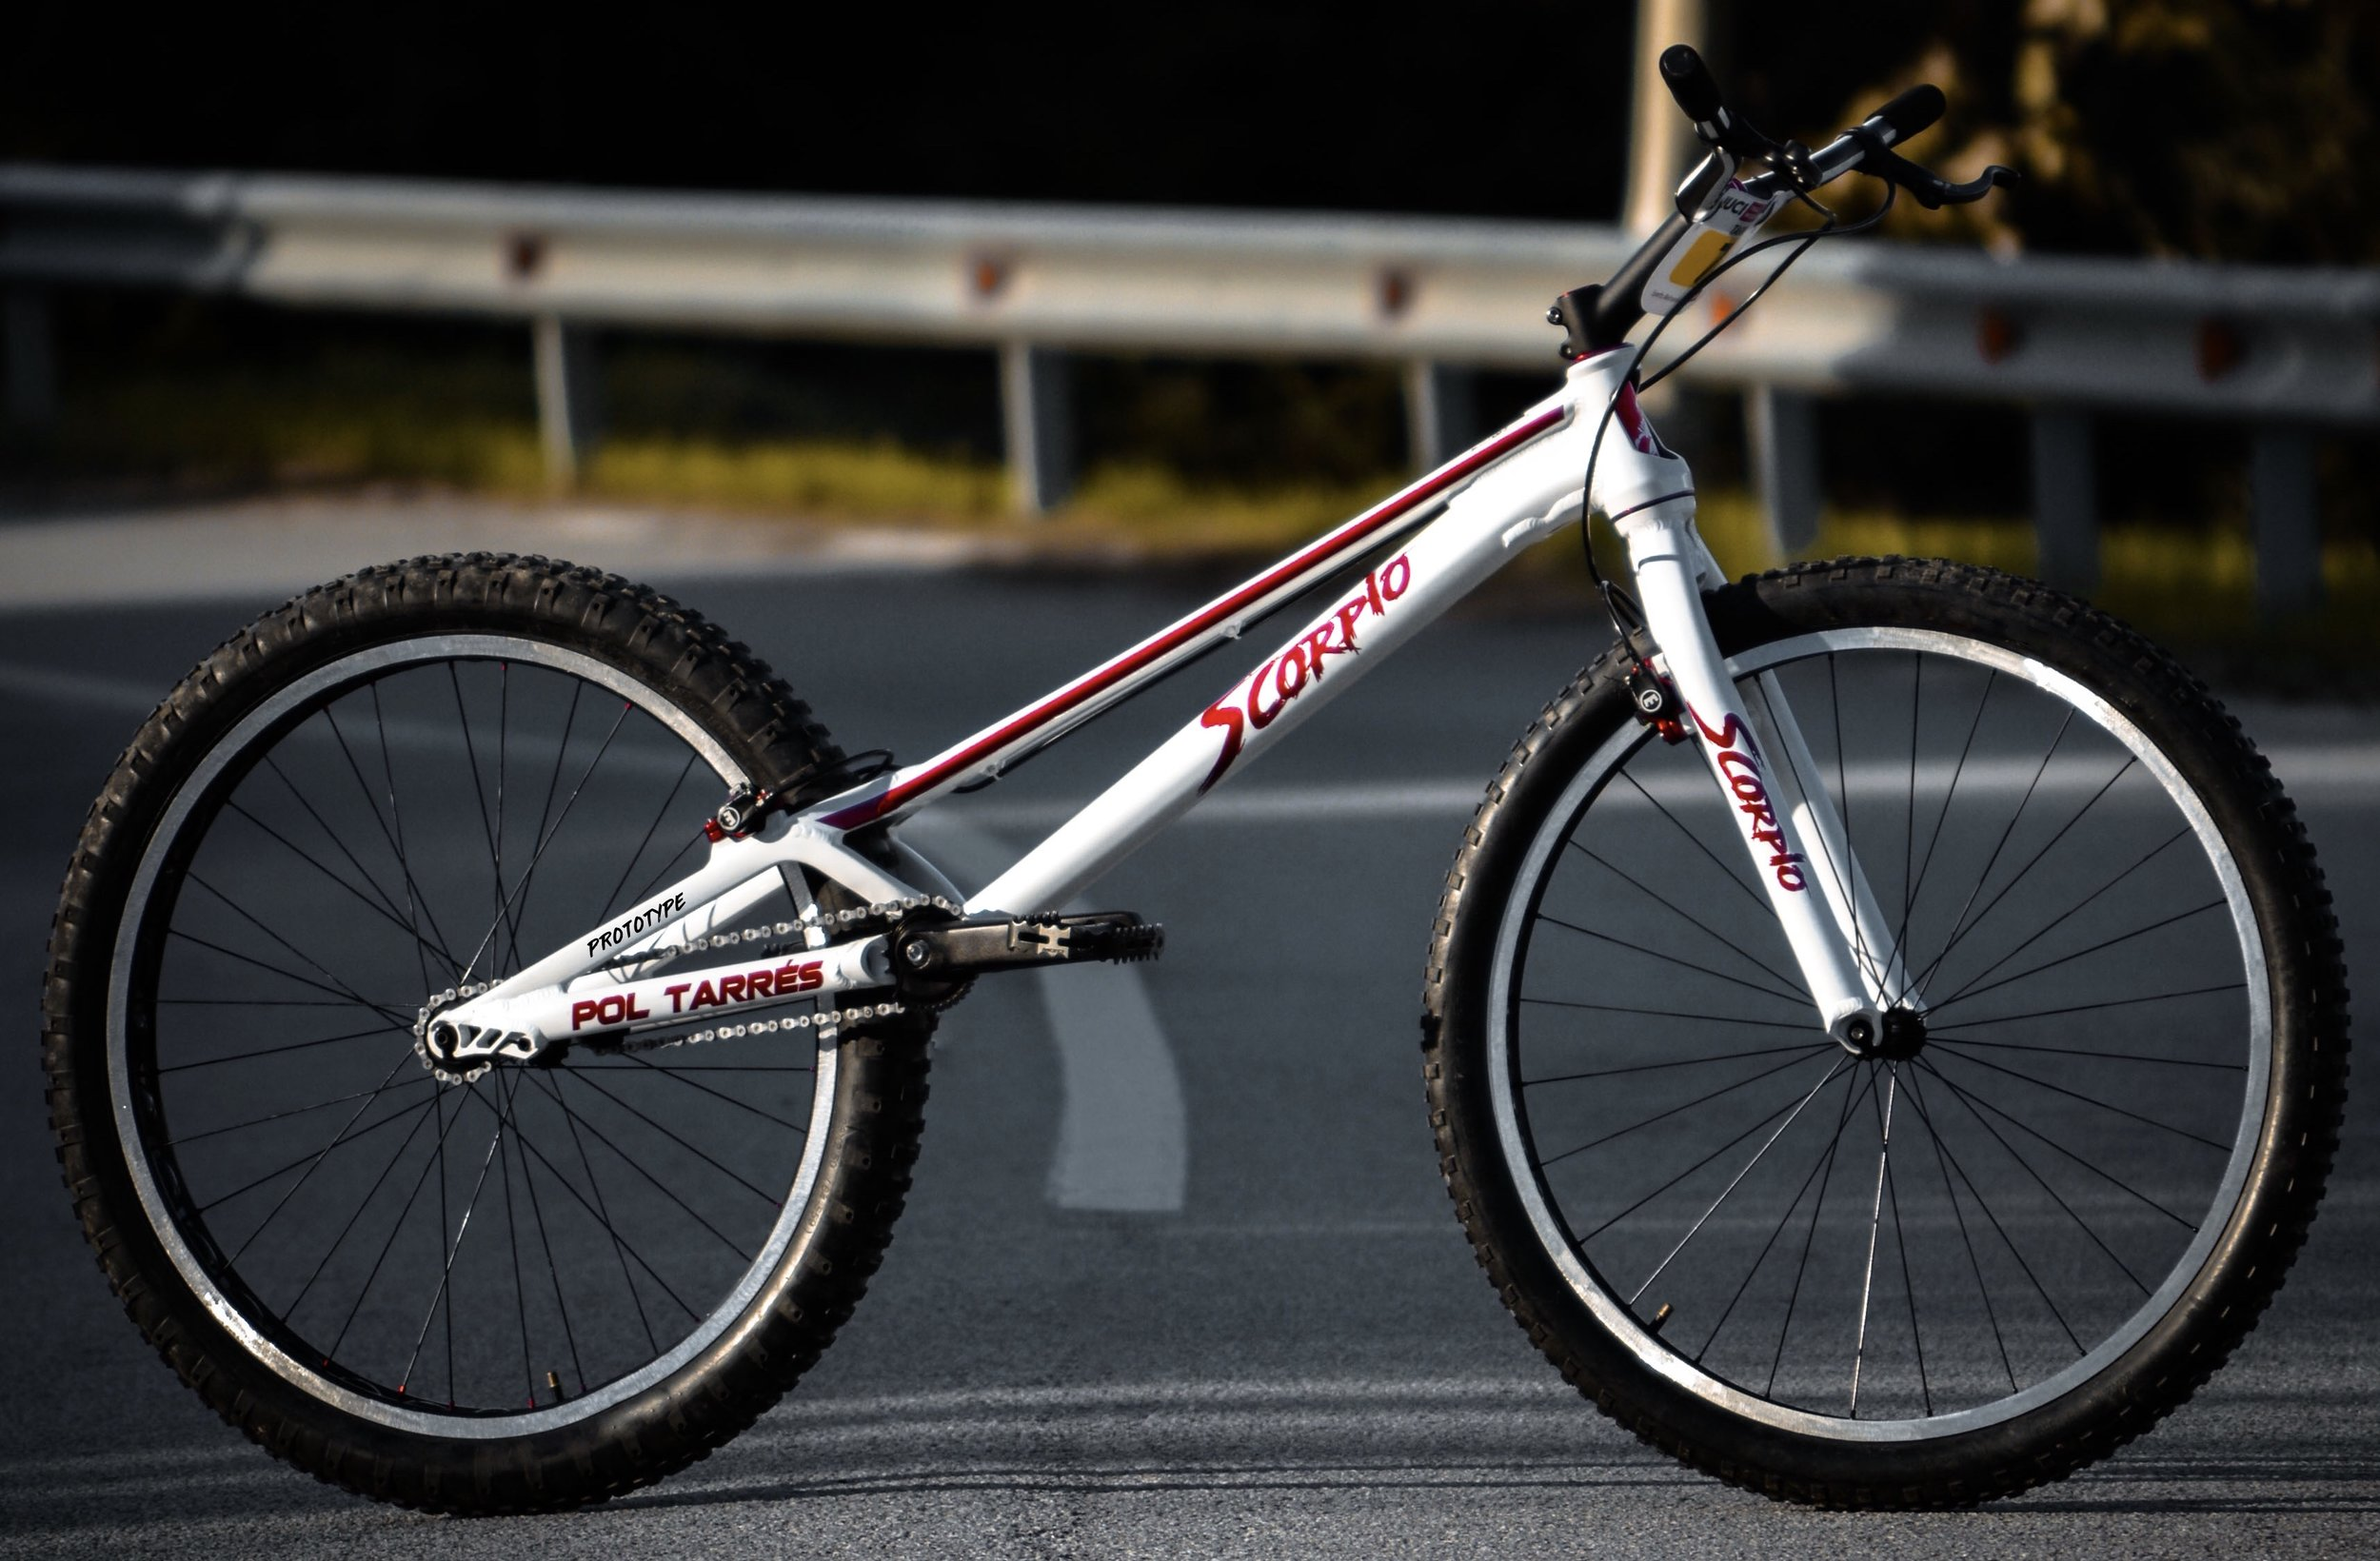 Pol Tarrés' Scorpio special edition for the 2018 UCI Trials World Championships in Chengdú, China